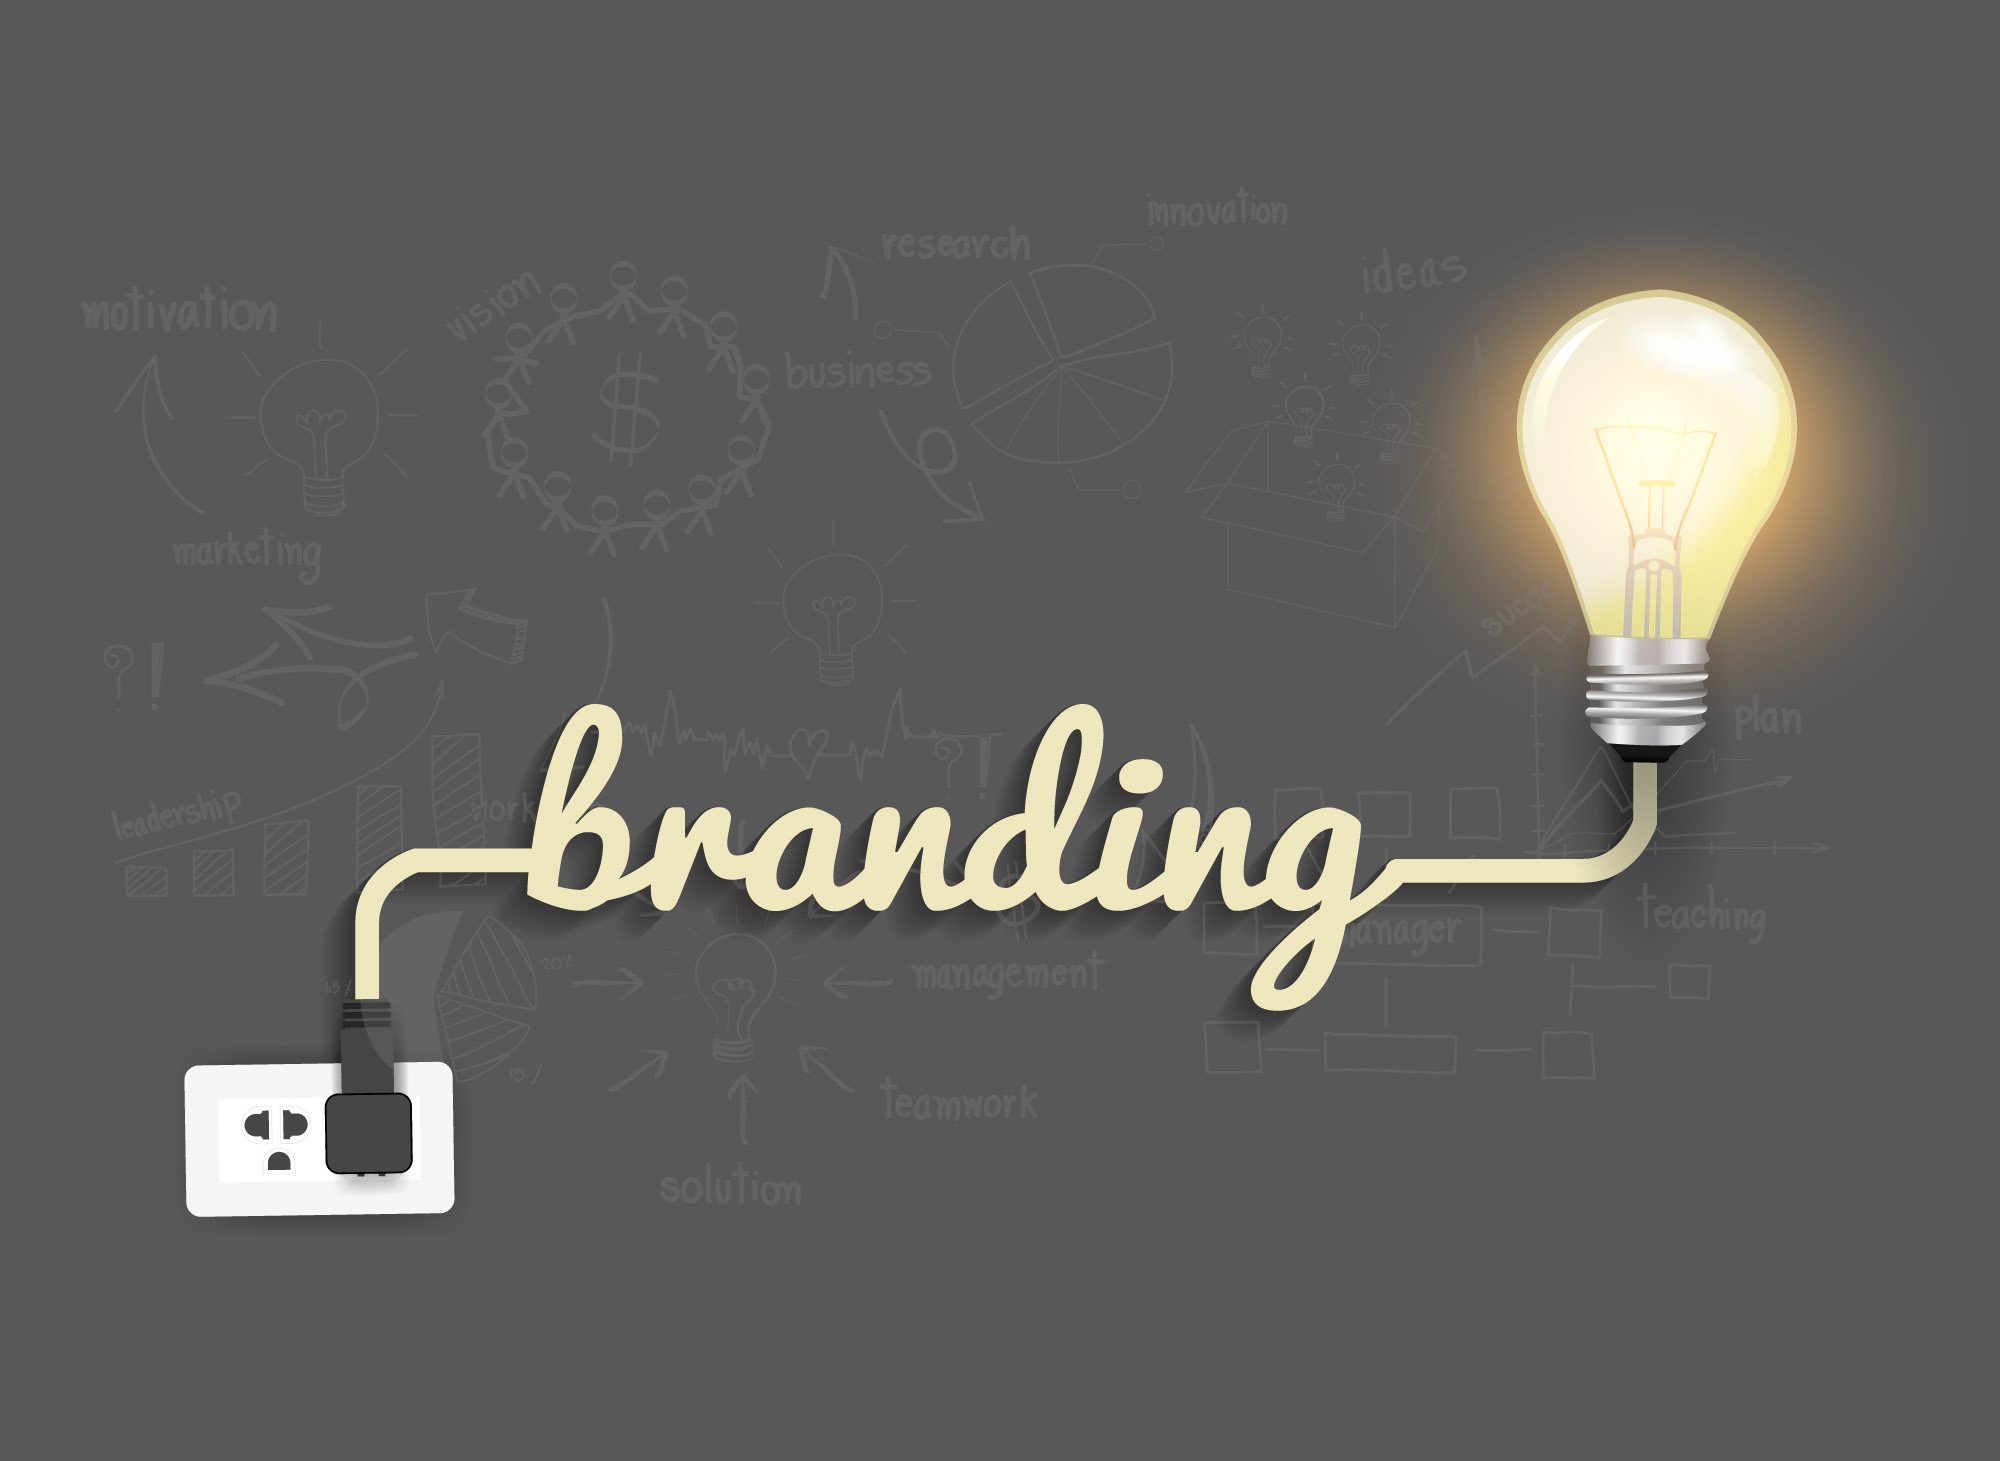 Why successfully branding your eLearning business is about more than just your company logo